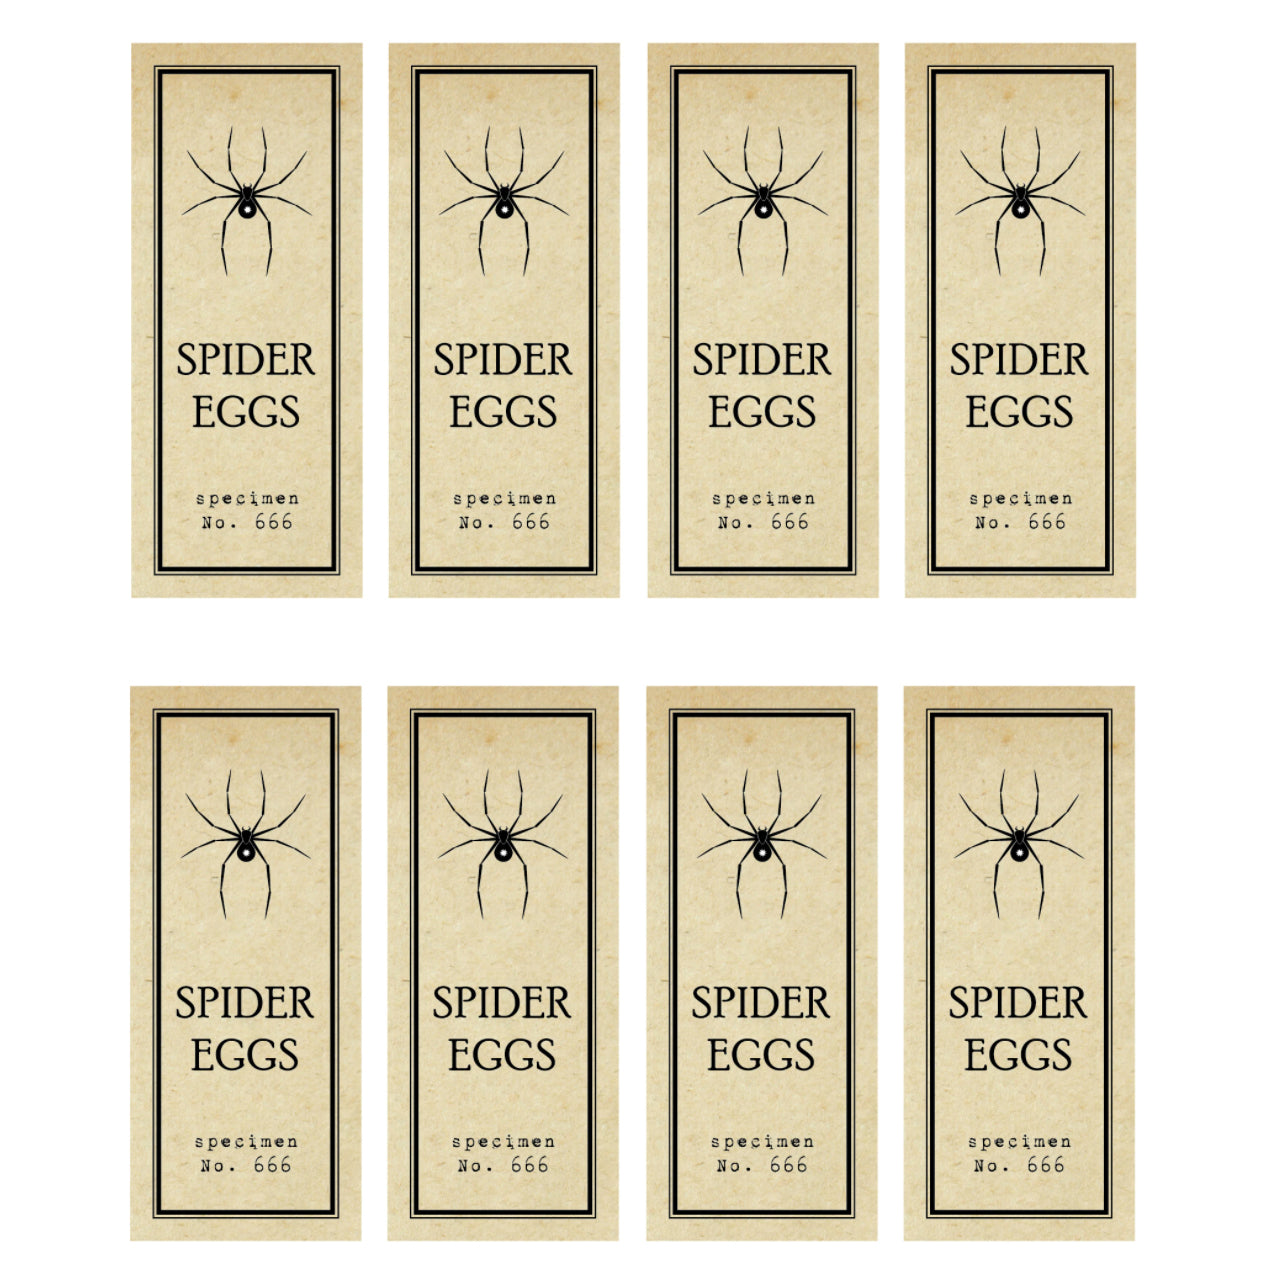 Spider Eggs Test Tube Free Printable Labels | The Party Darling